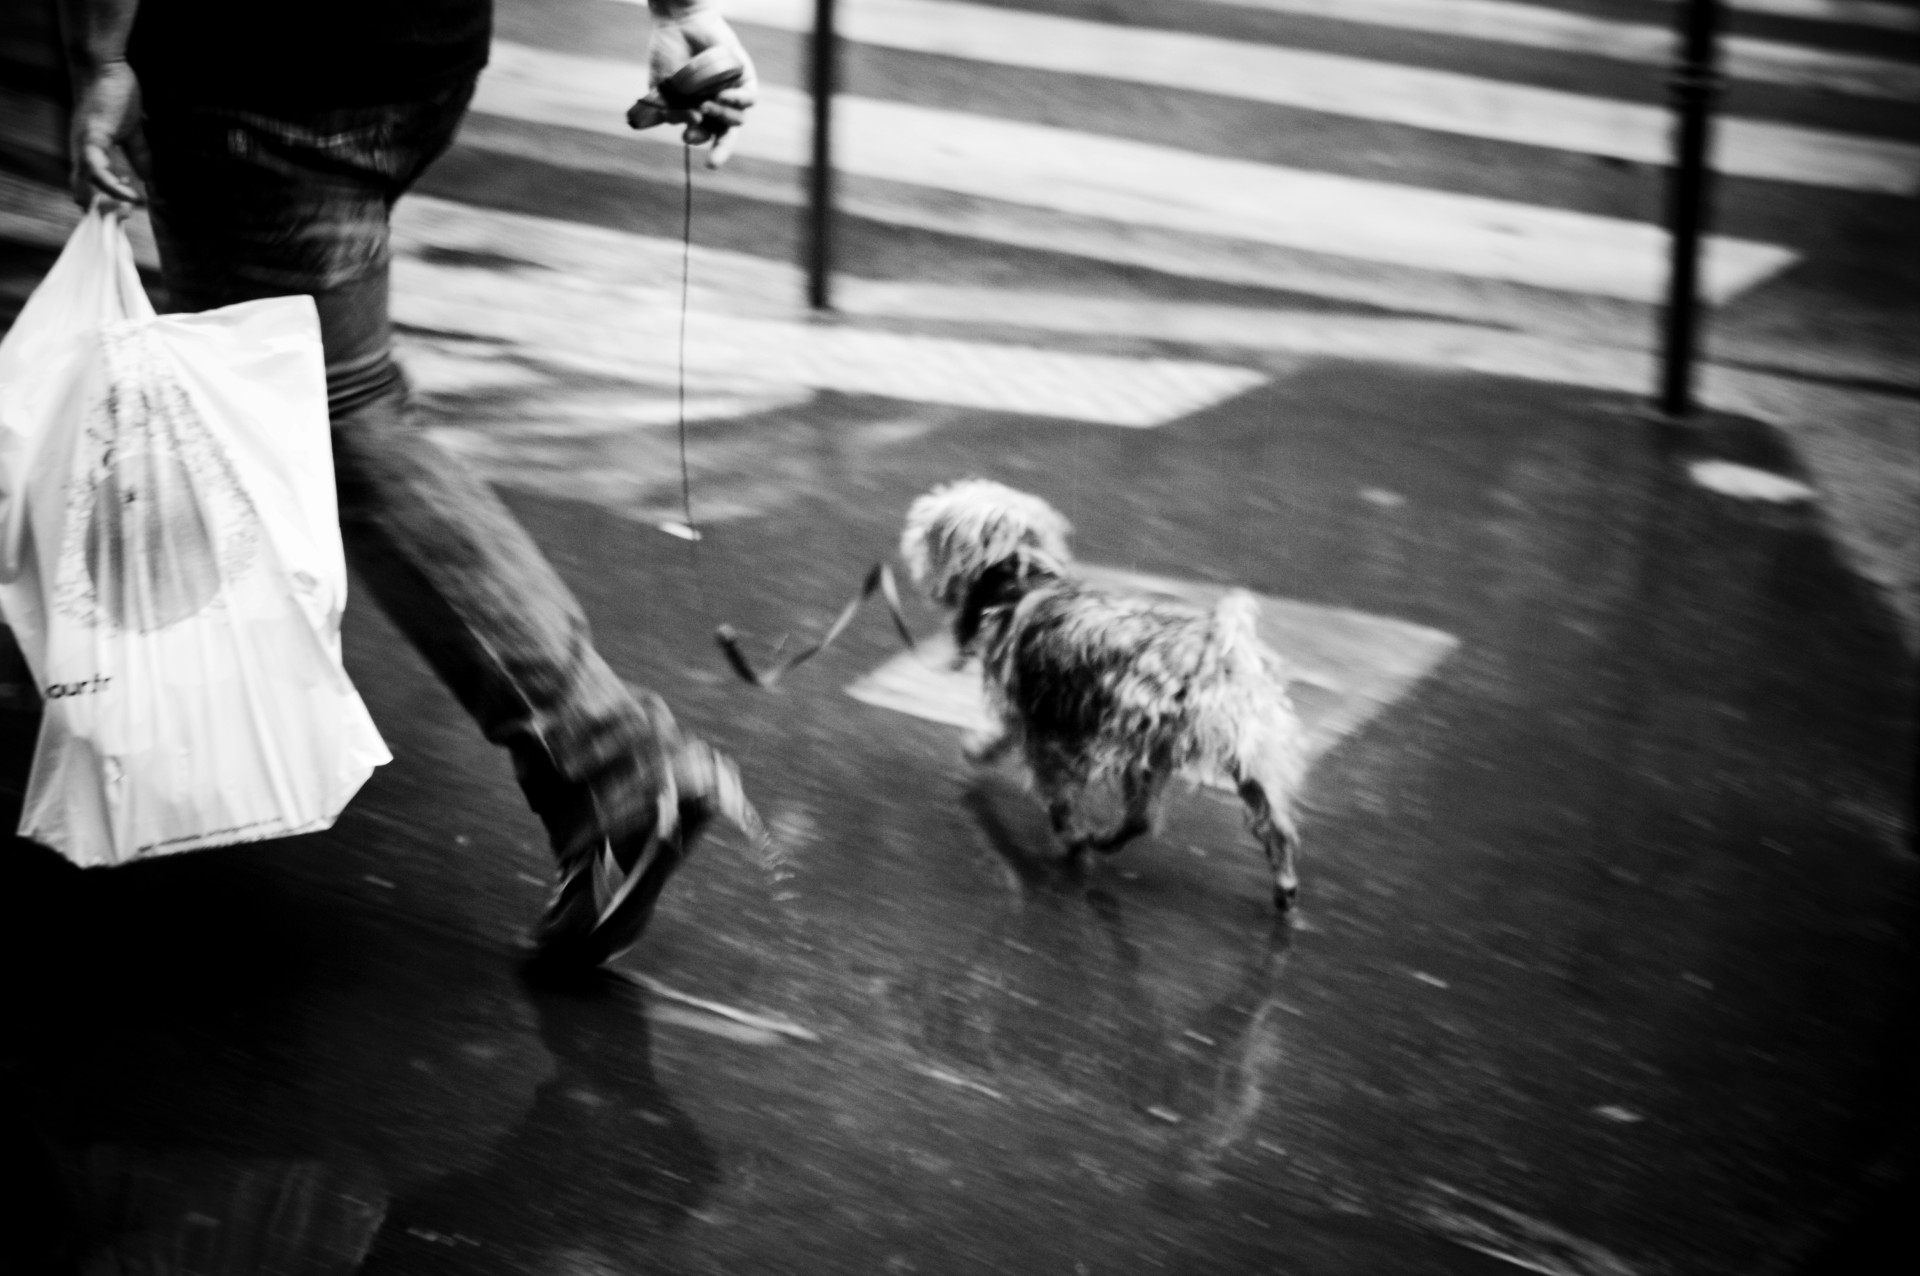 Paris_Dog_Carolin-Weinkopf_IGP1342sw